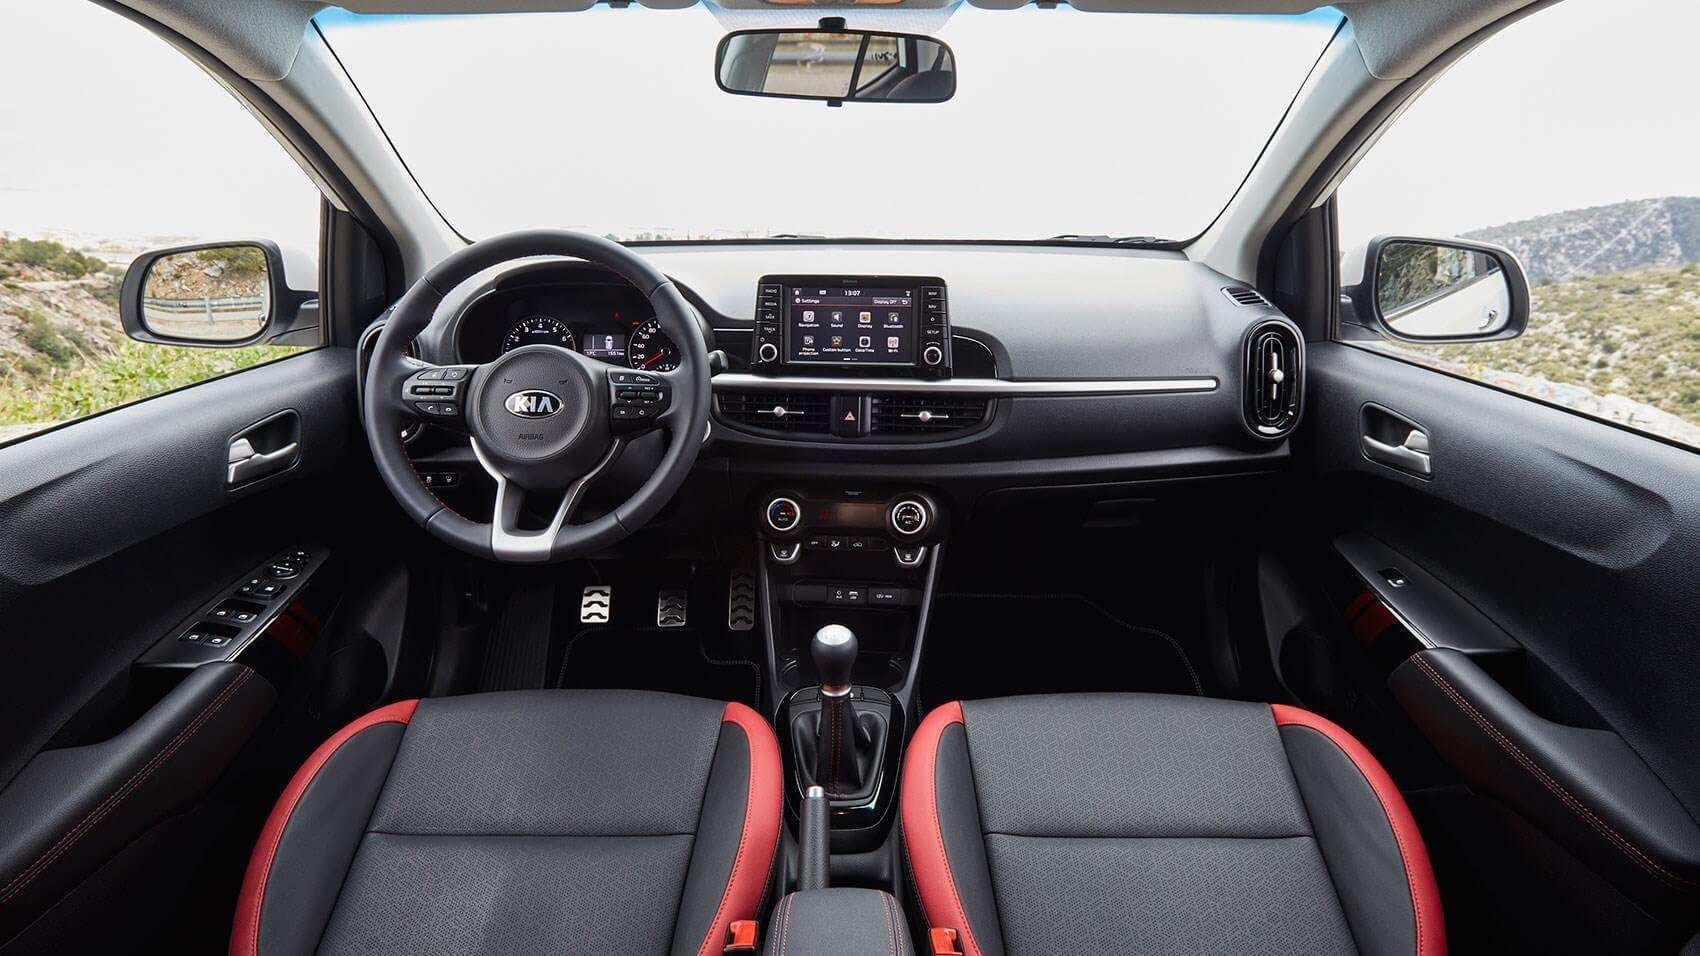 32 Concept of Kia Rio 2019 Interior Model for Kia Rio 2019 Interior